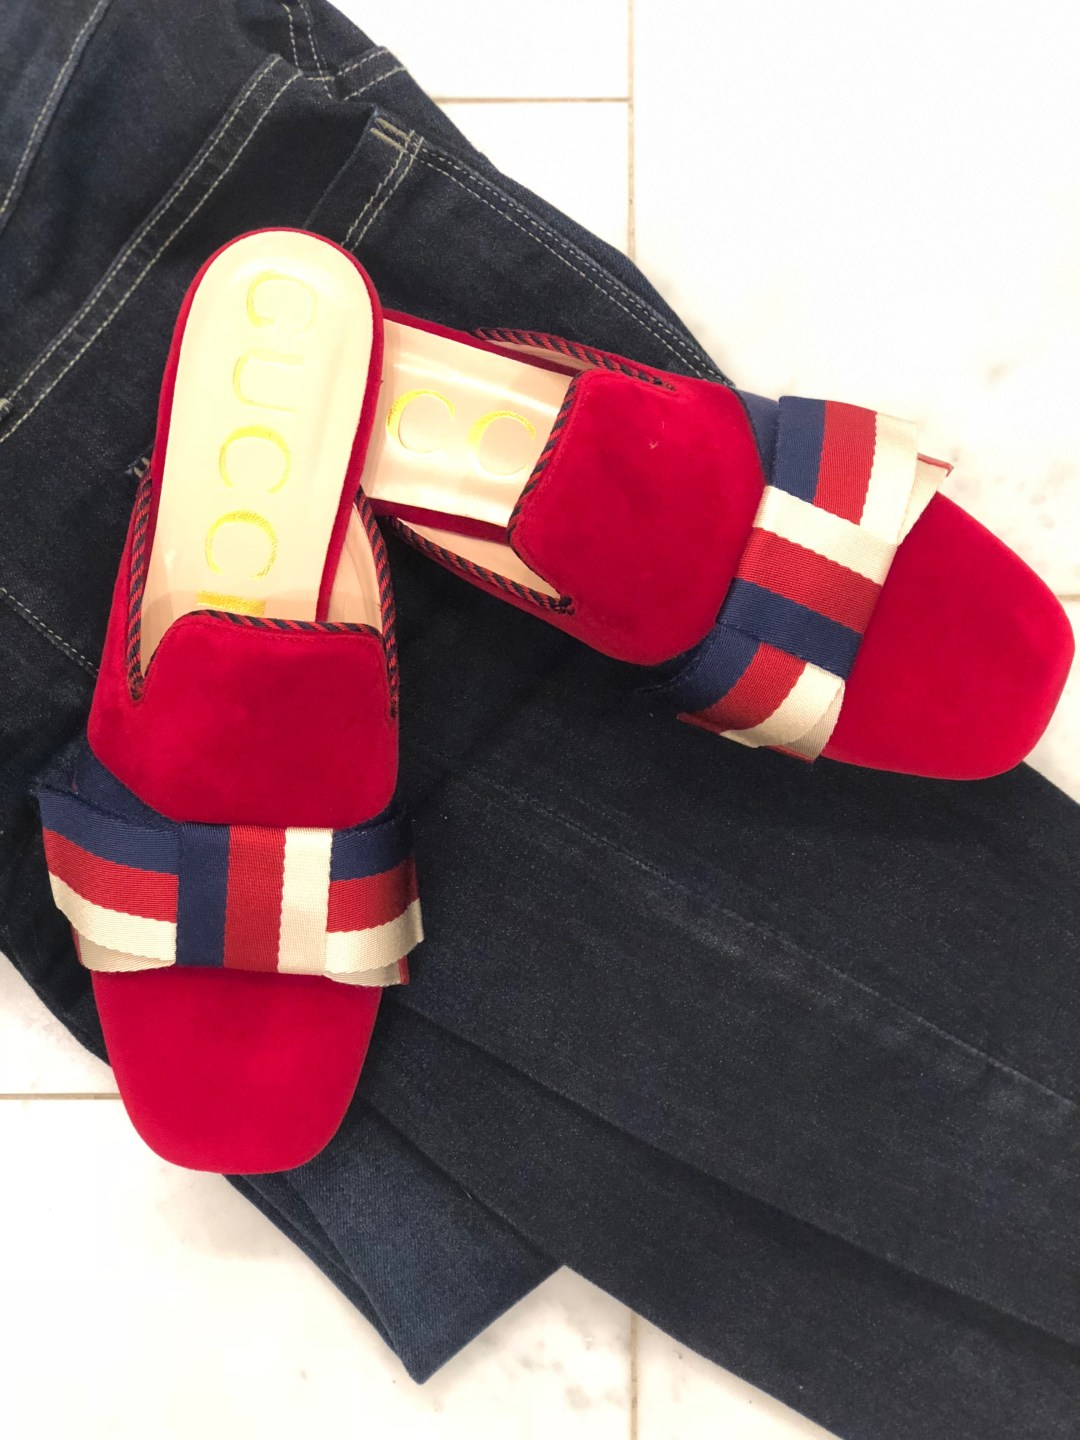 Velvet Gucci Slippers on tanyafosterblog Instagram